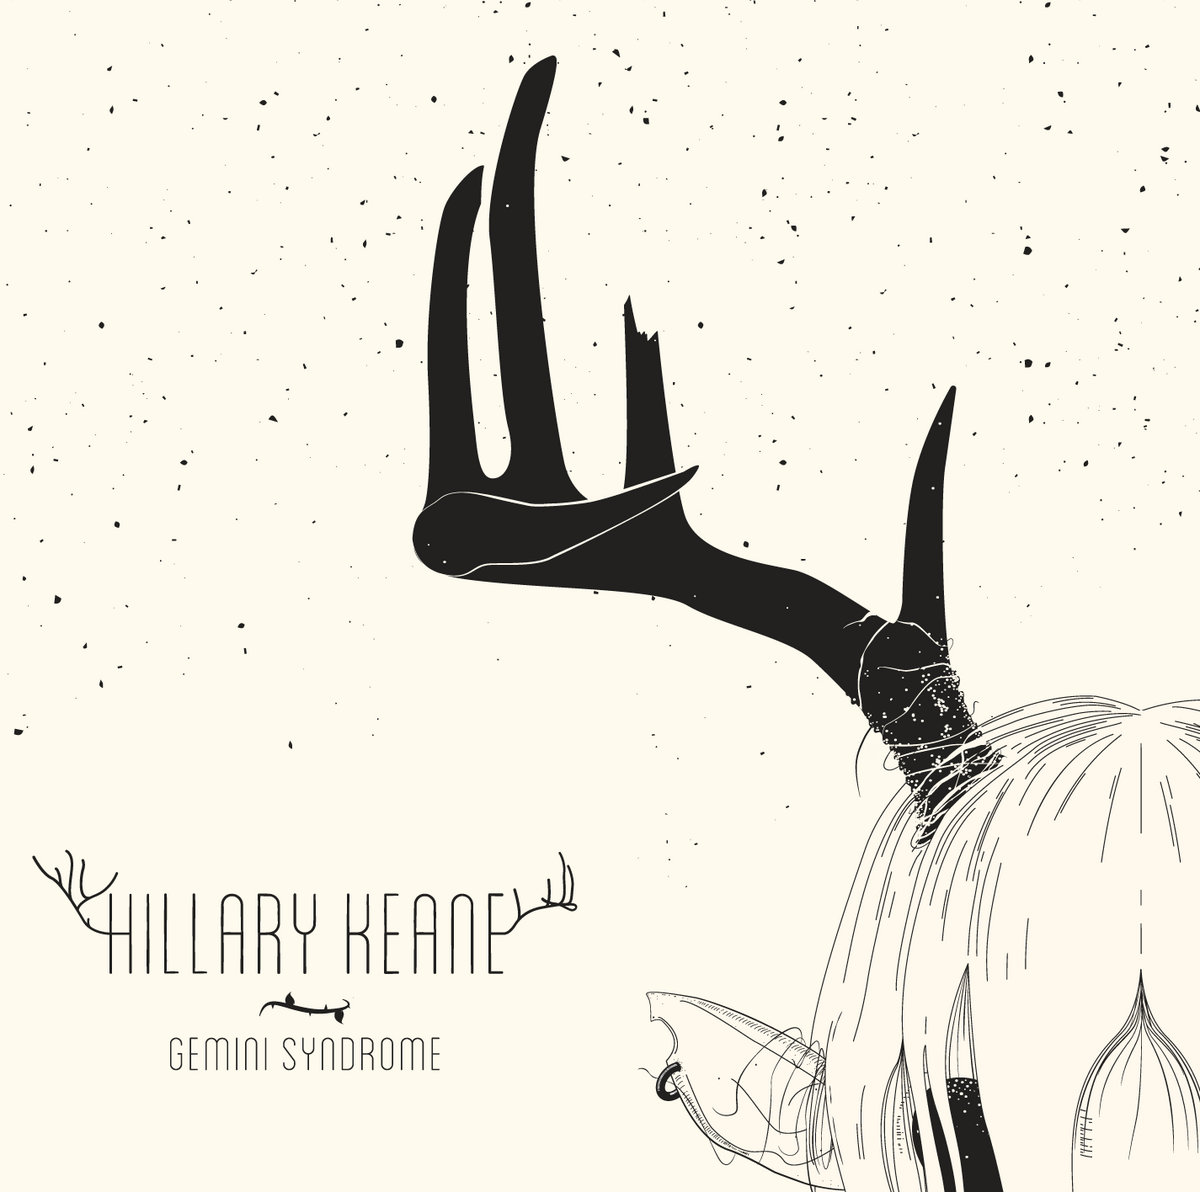 Gemini syndrome lovelorn records gemini syndrome by hillary keane buycottarizona Gallery